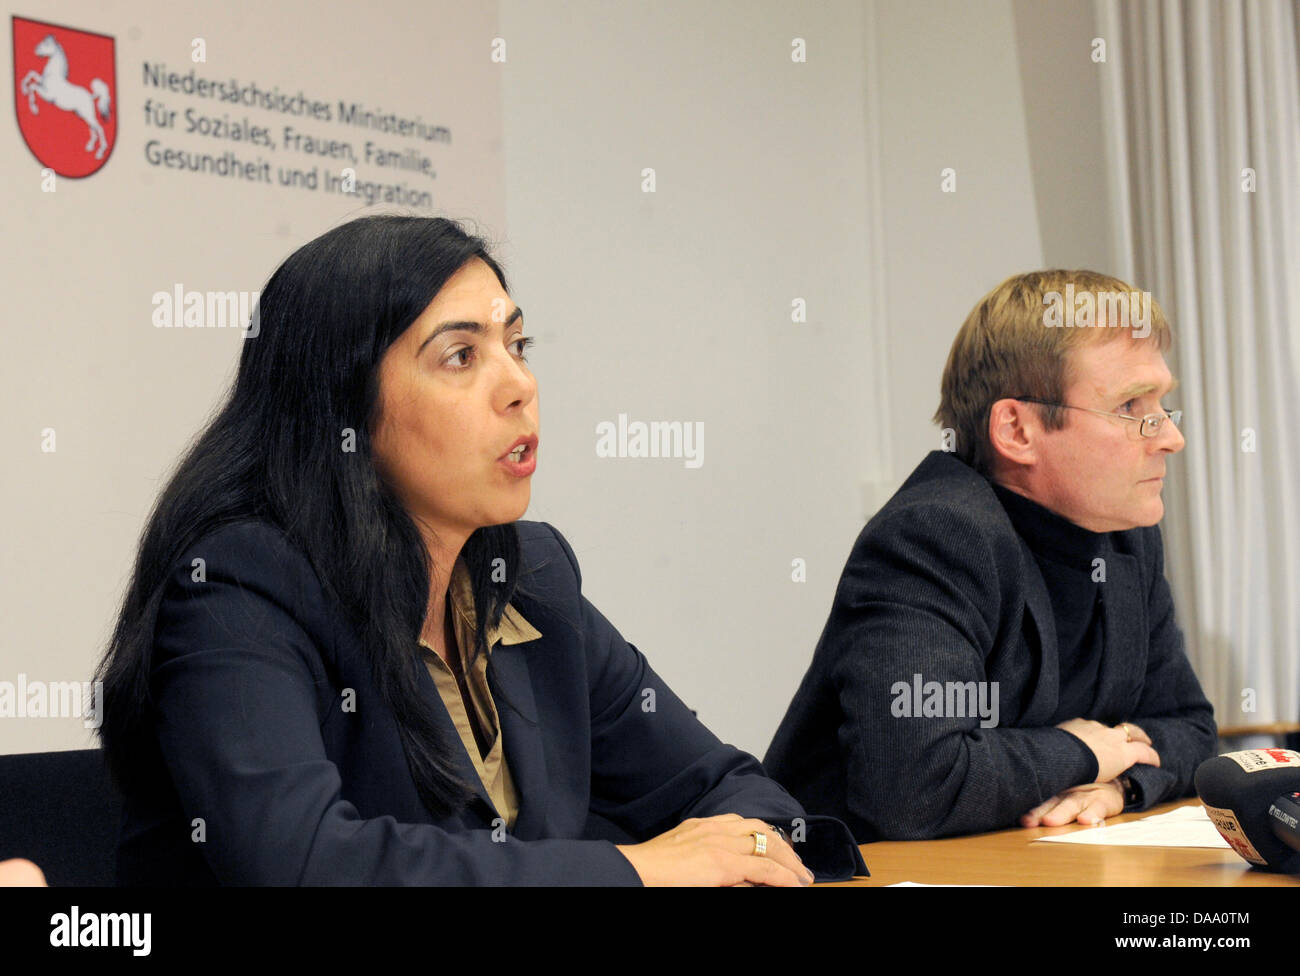 Lower Saxony's Minister of Health and Social Affairs, Aygul Ozkan (CDU) (L), and The director of department - Stock Image